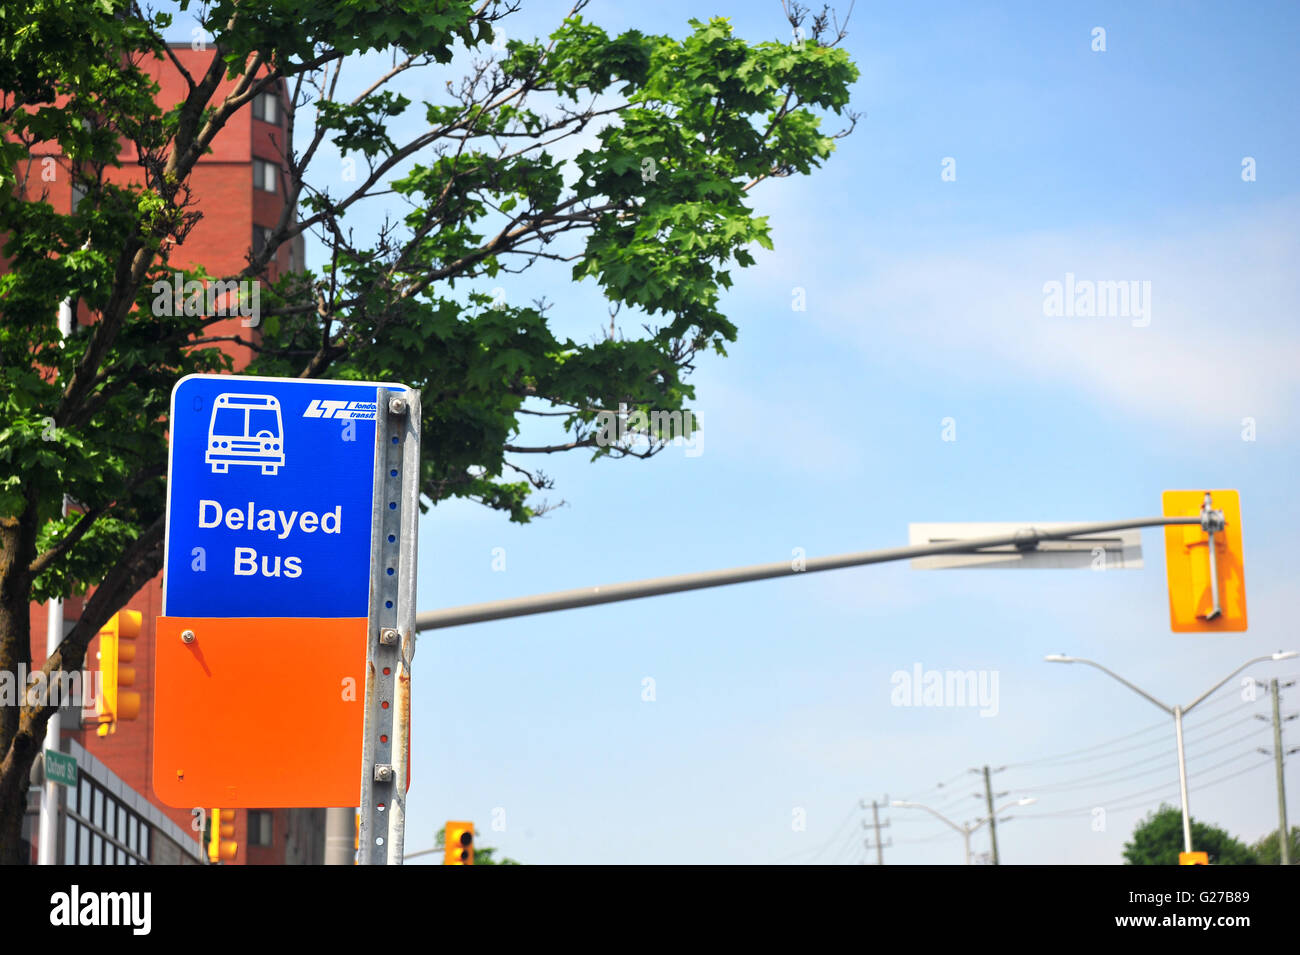 A bus sign with Delayed Bus written on it in London, Ontario in Canada. - Stock Image